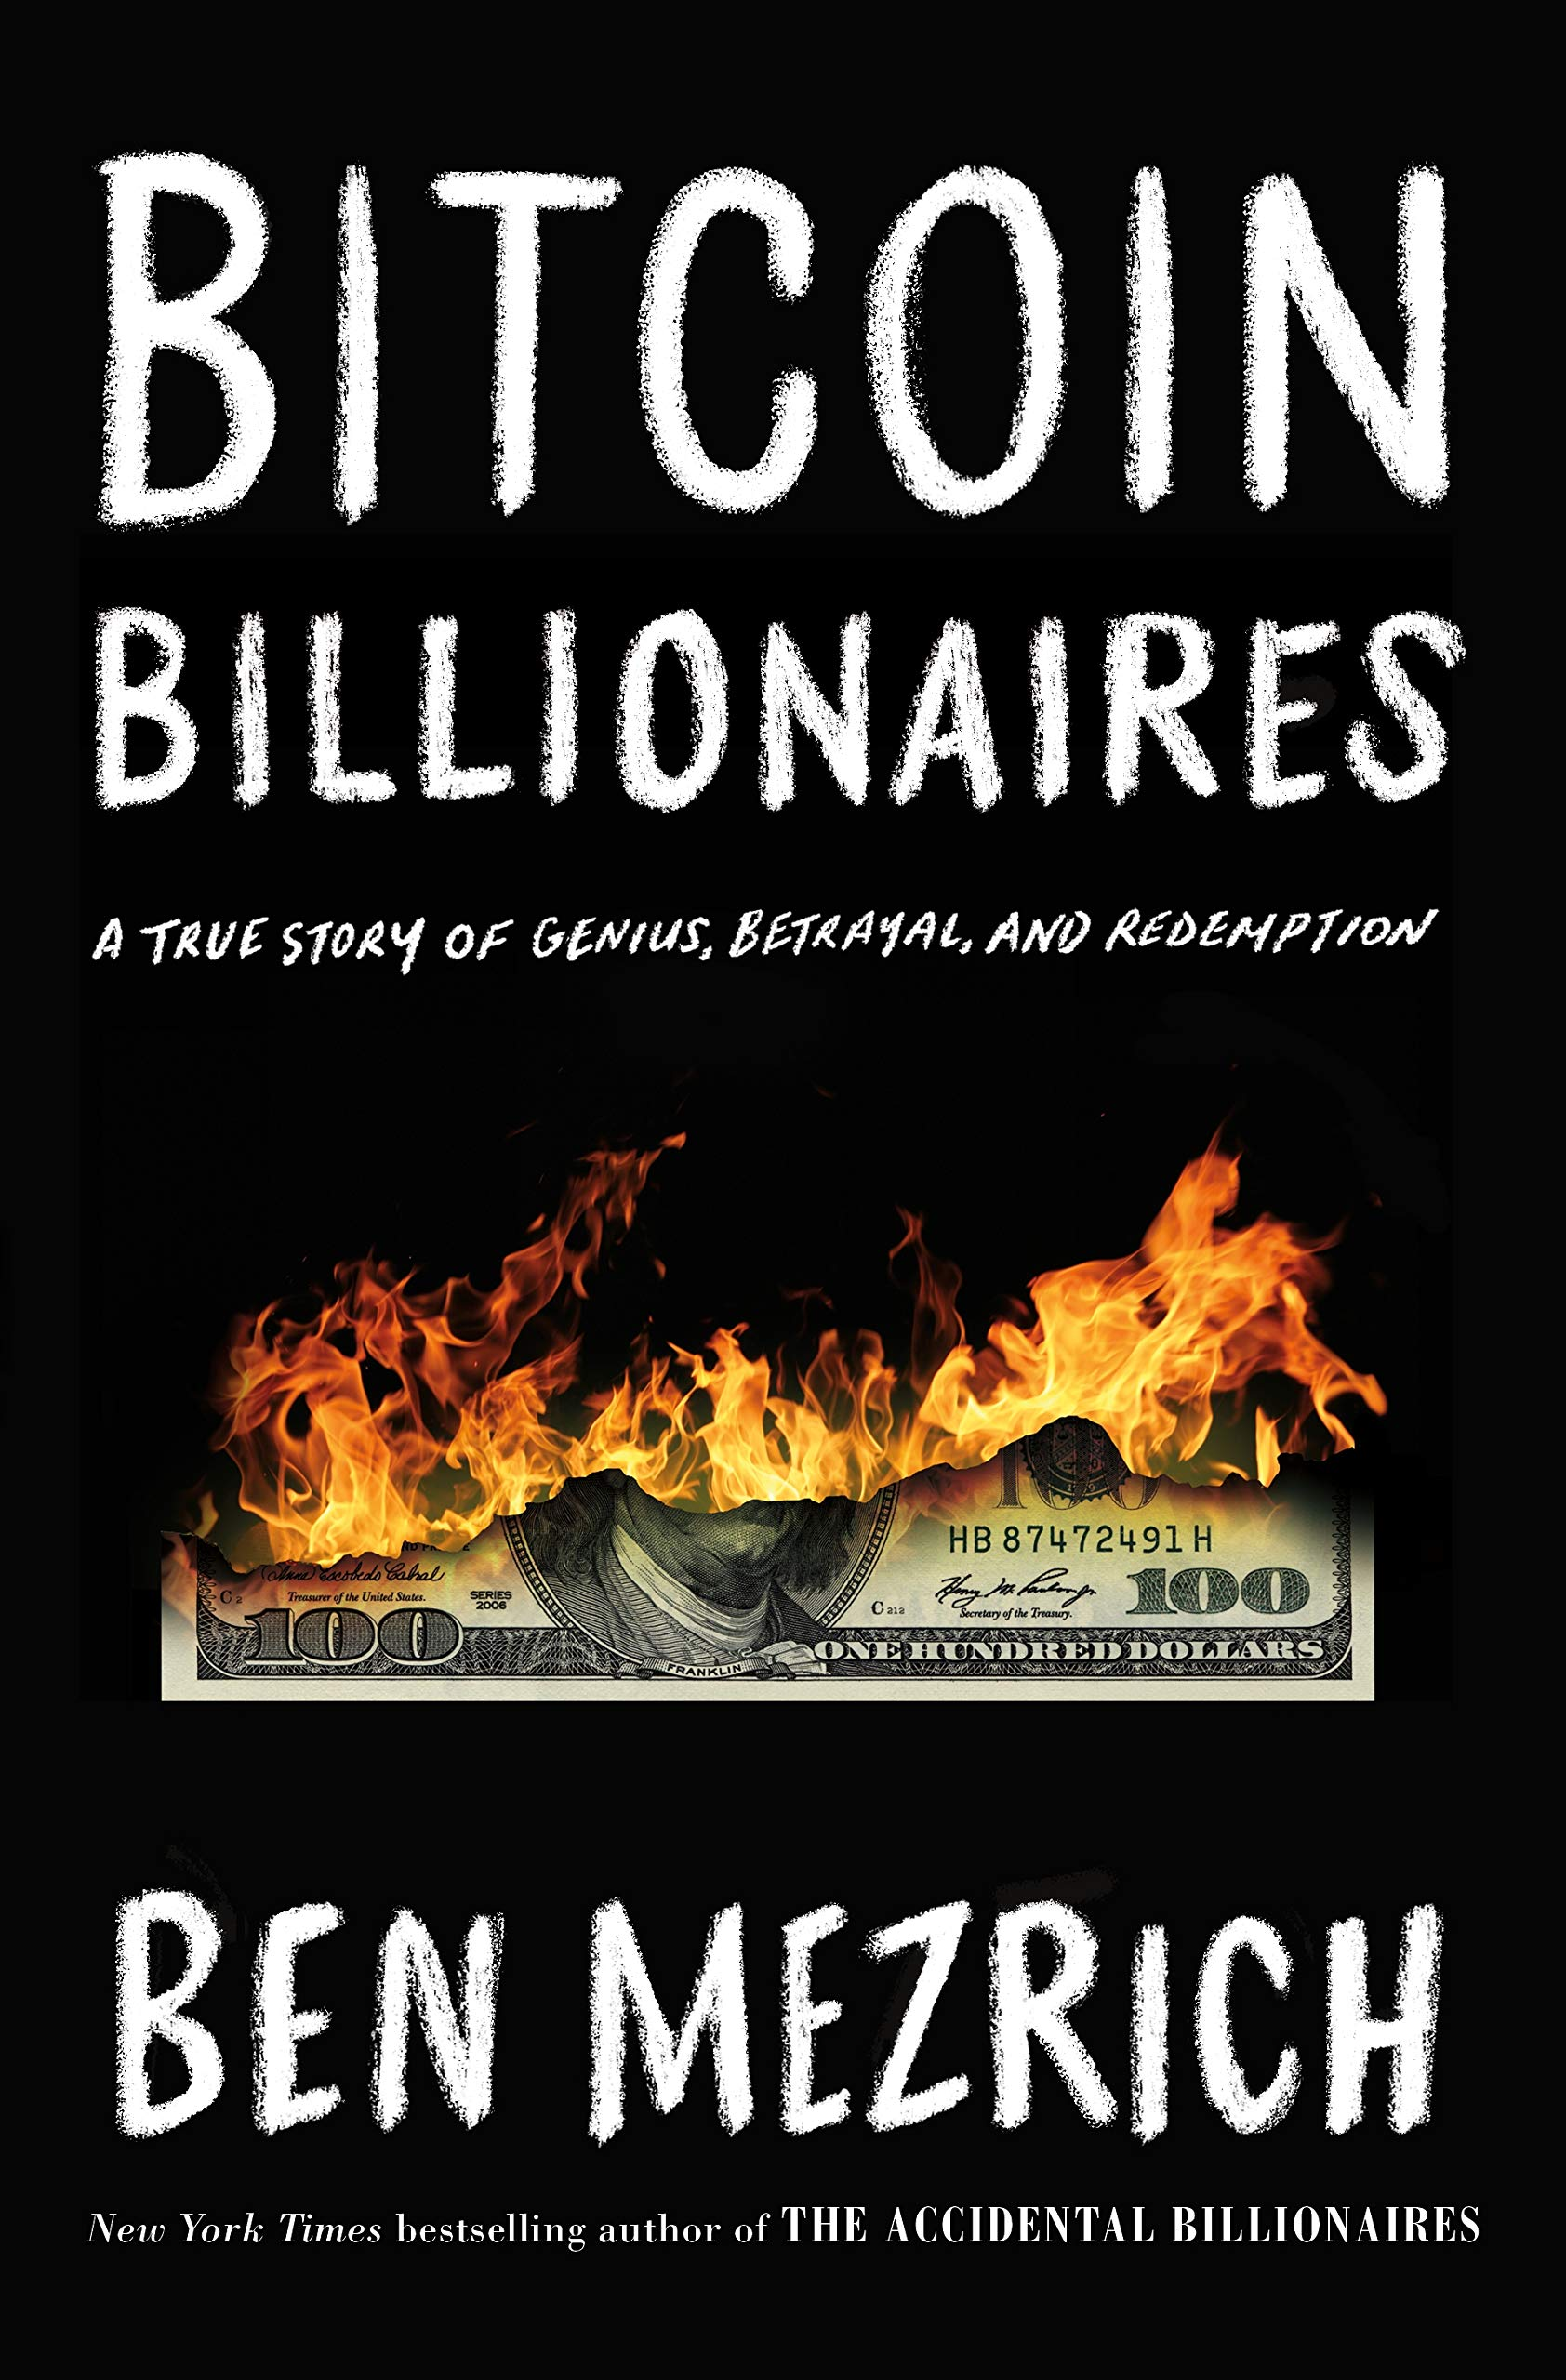 Bitcoin Billionaires. A True Story of Genius, Betrayal and Redemption